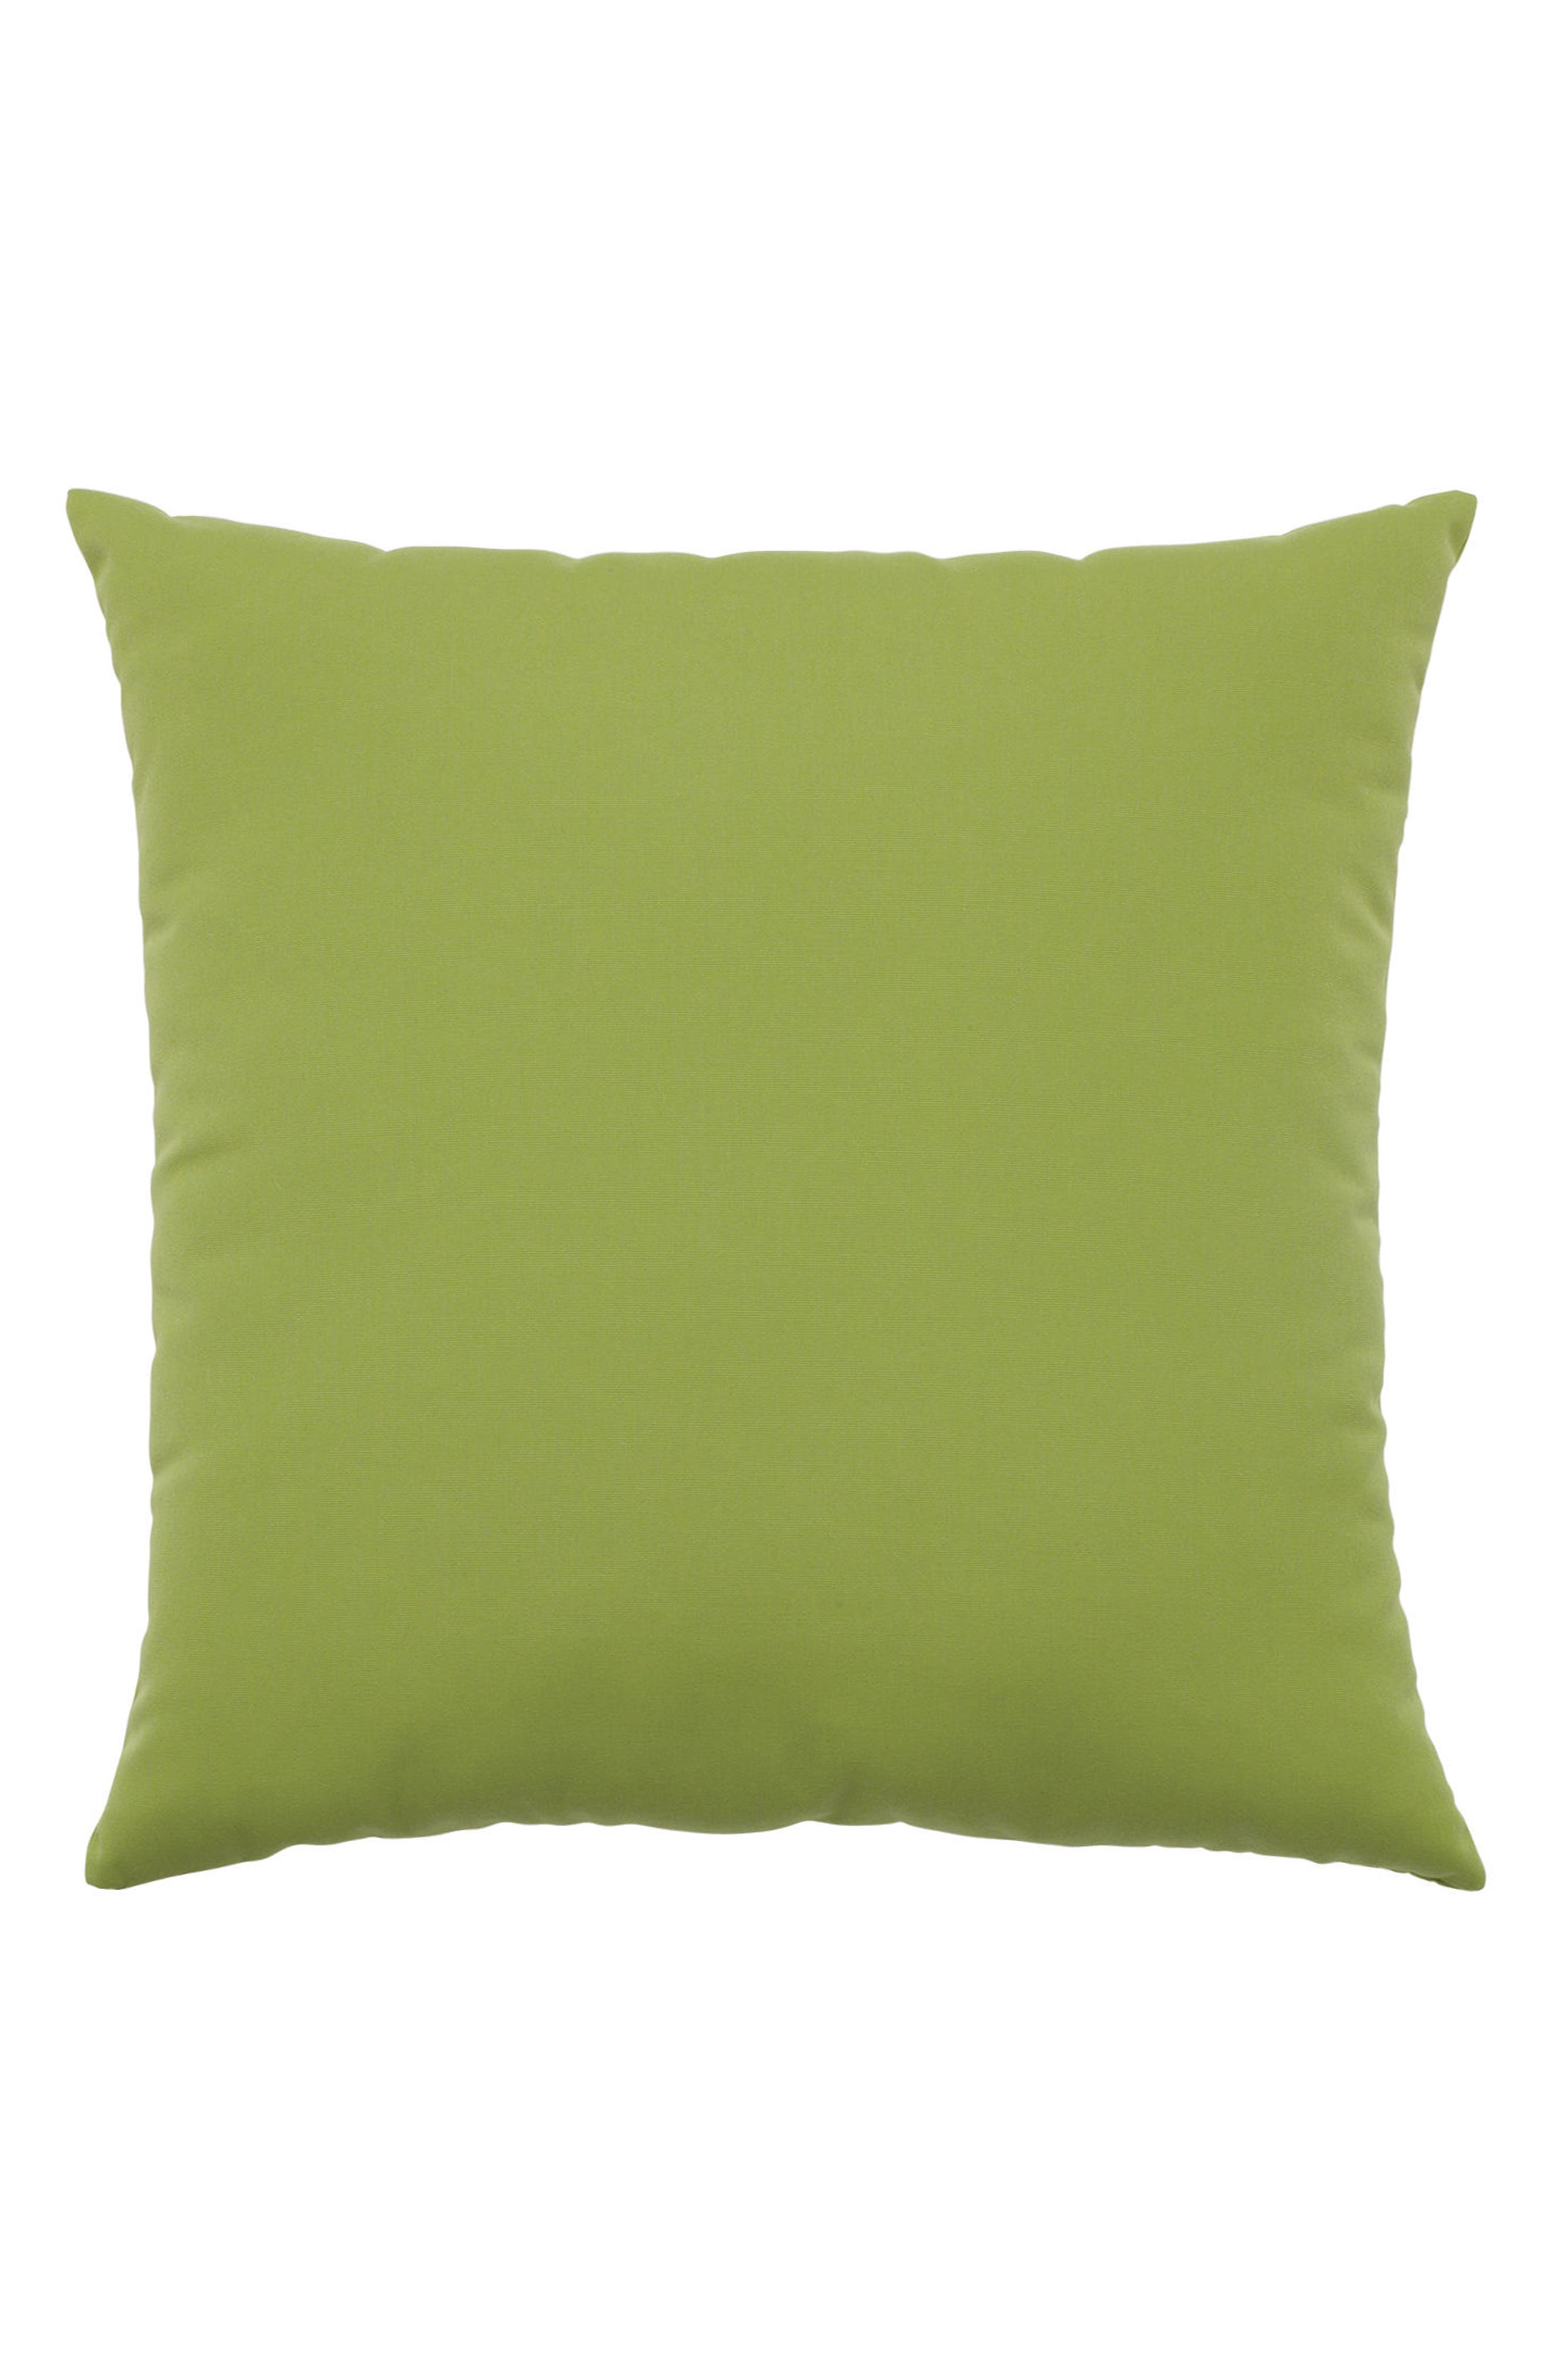 ELAINE SMITH,                             Basket Weave Indoor/Outdoor Accent Pillow,                             Alternate thumbnail 2, color,                             300